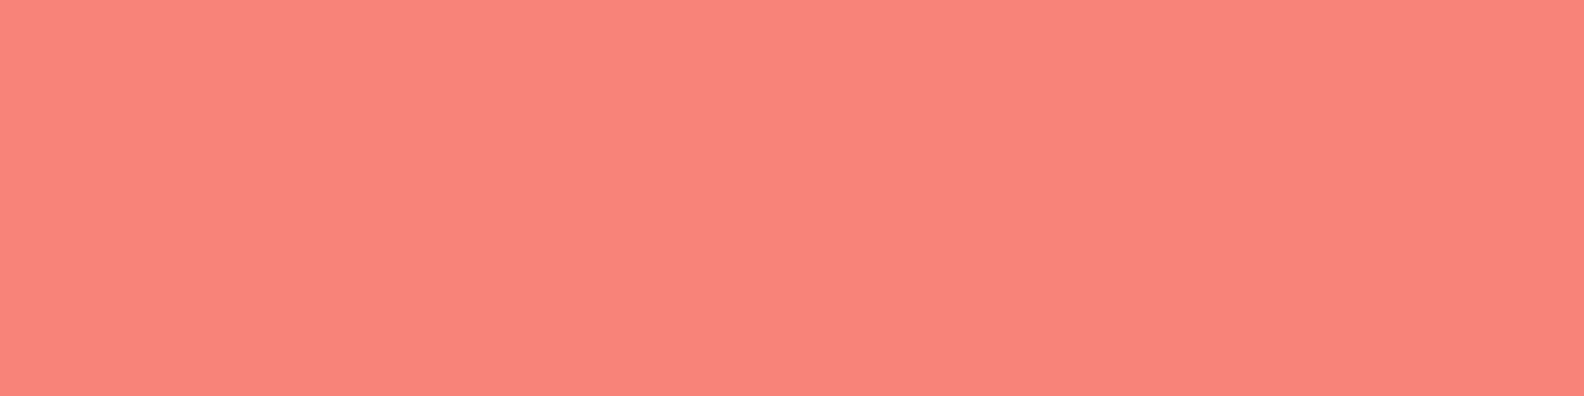 1584x396 Congo Pink Solid Color Background